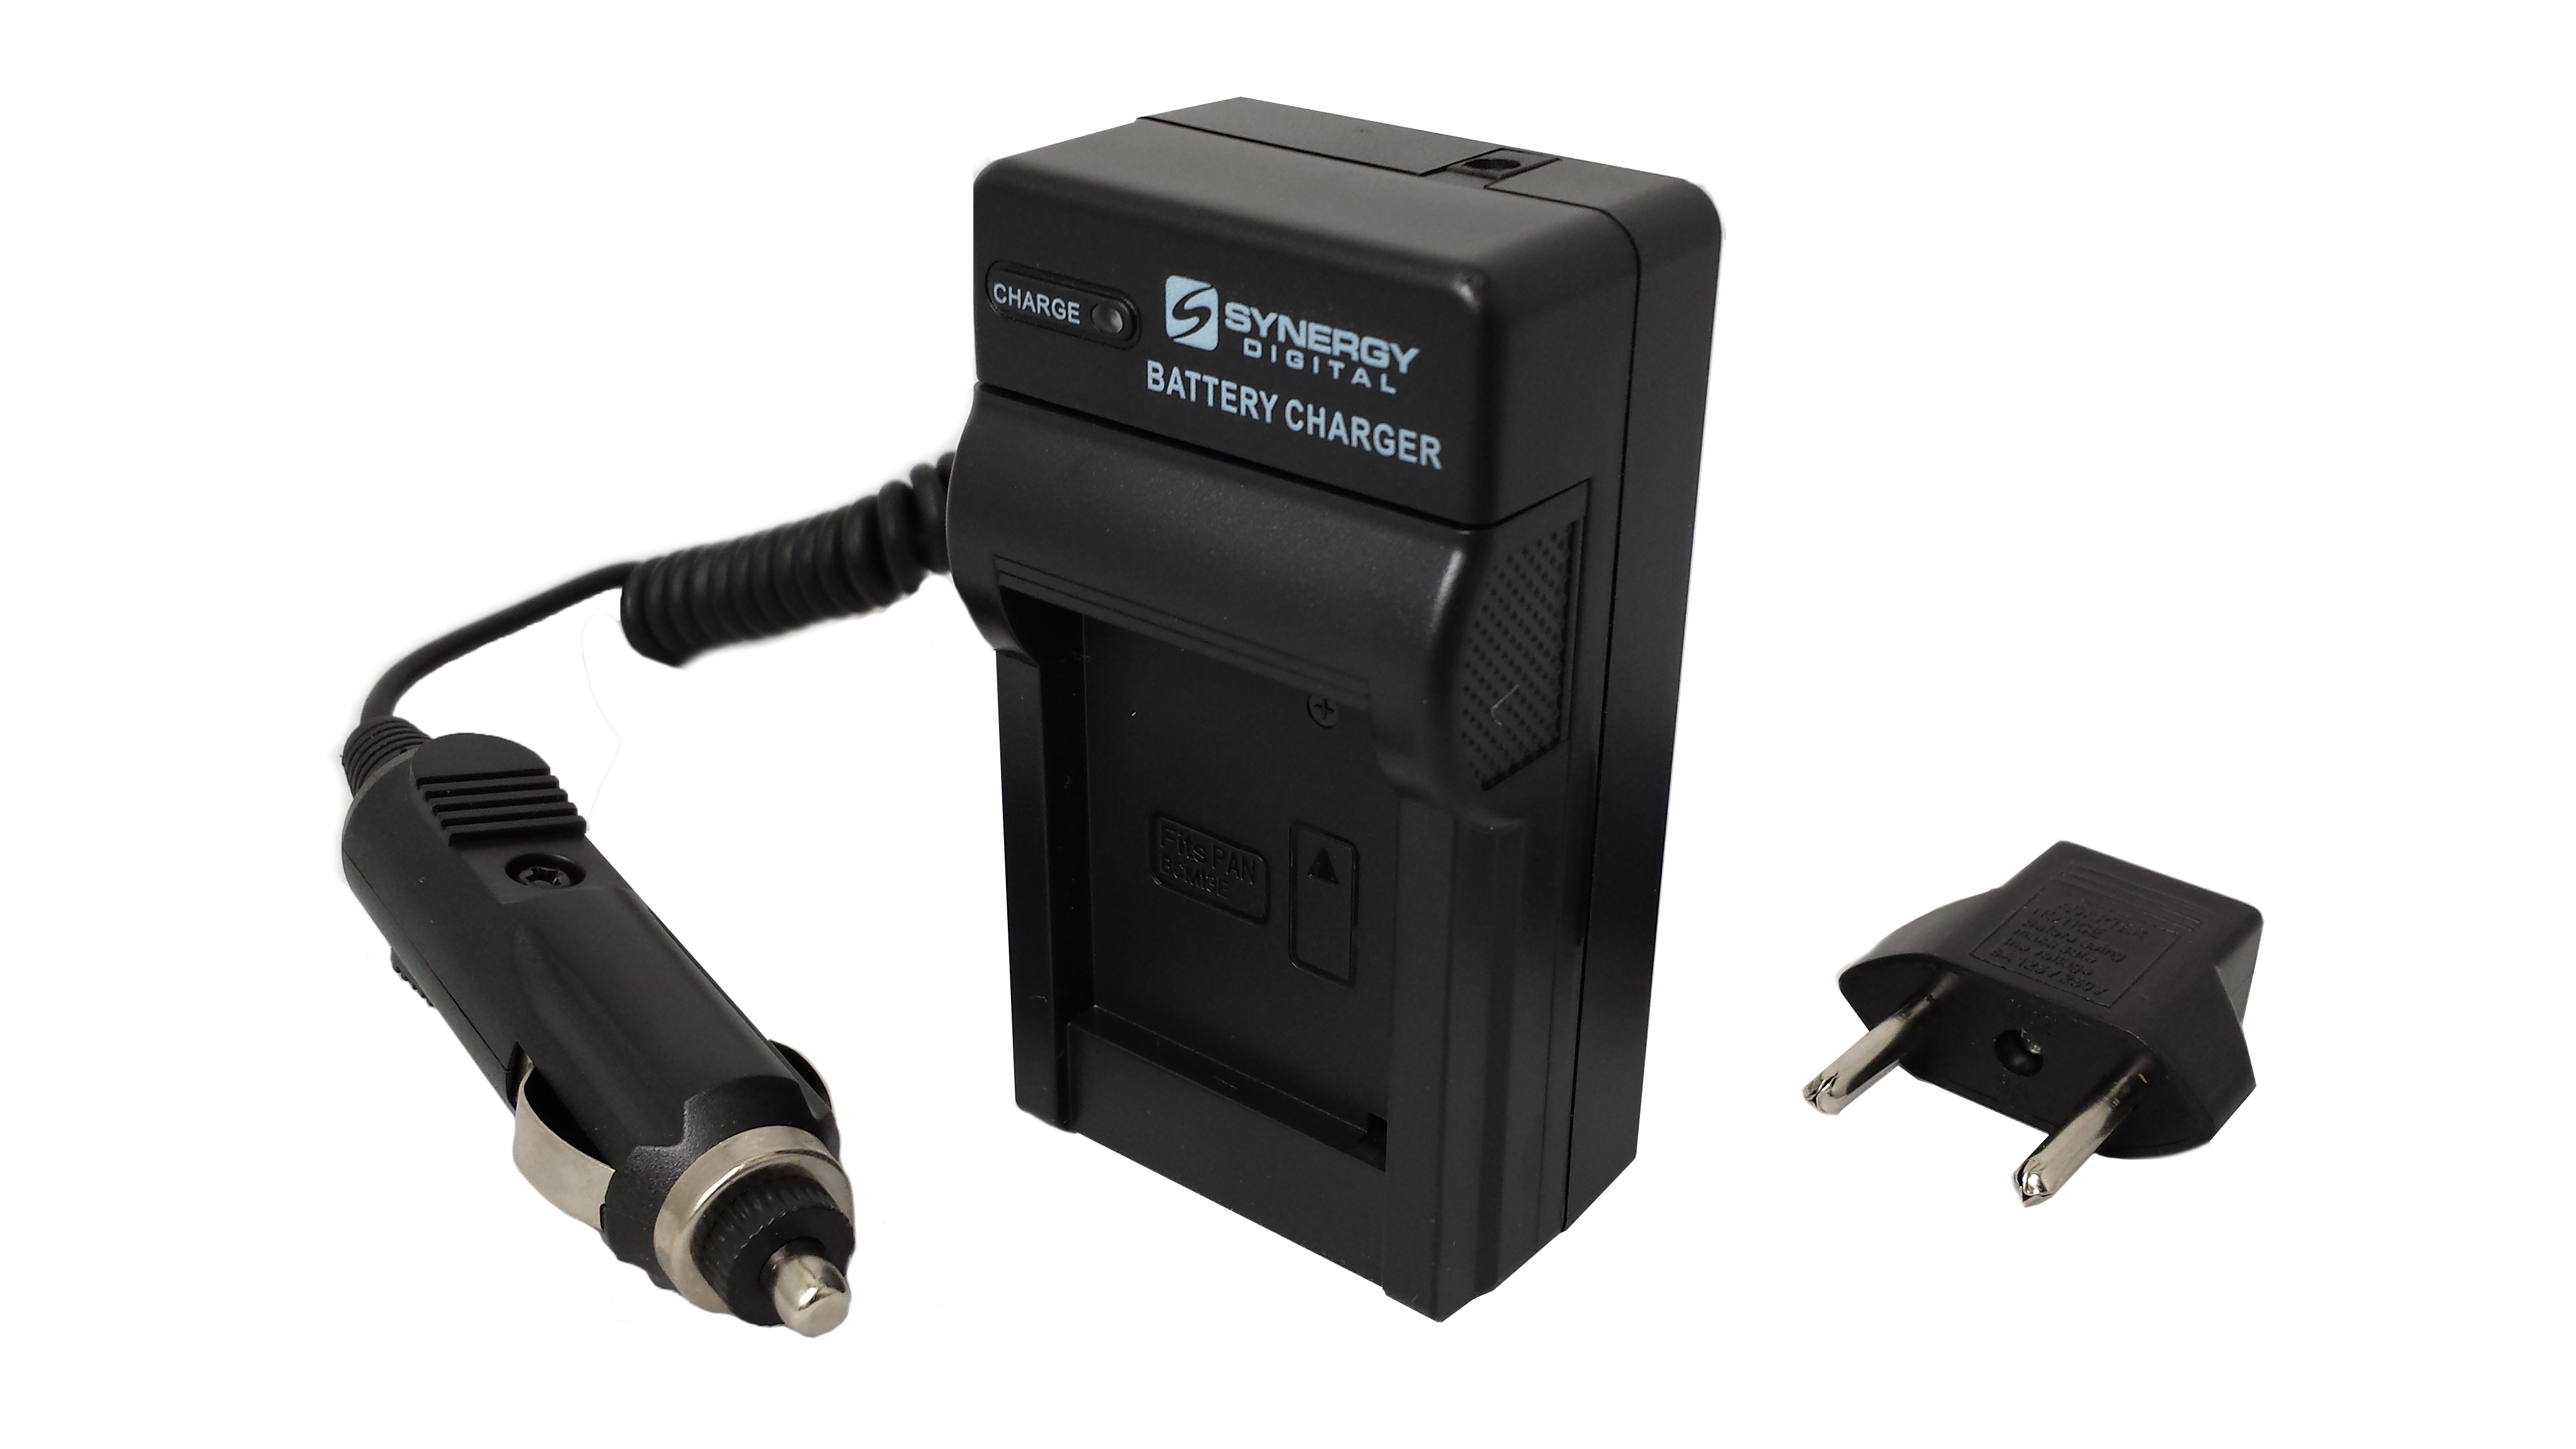 Synergy Digital JVC GZ-HD3 Camcorder Battery Charger (110/220v with Car & EU adapters) - Replacement Charger for JVC BN-VF808, BN-VF815, BN-VF82 at Sears.com